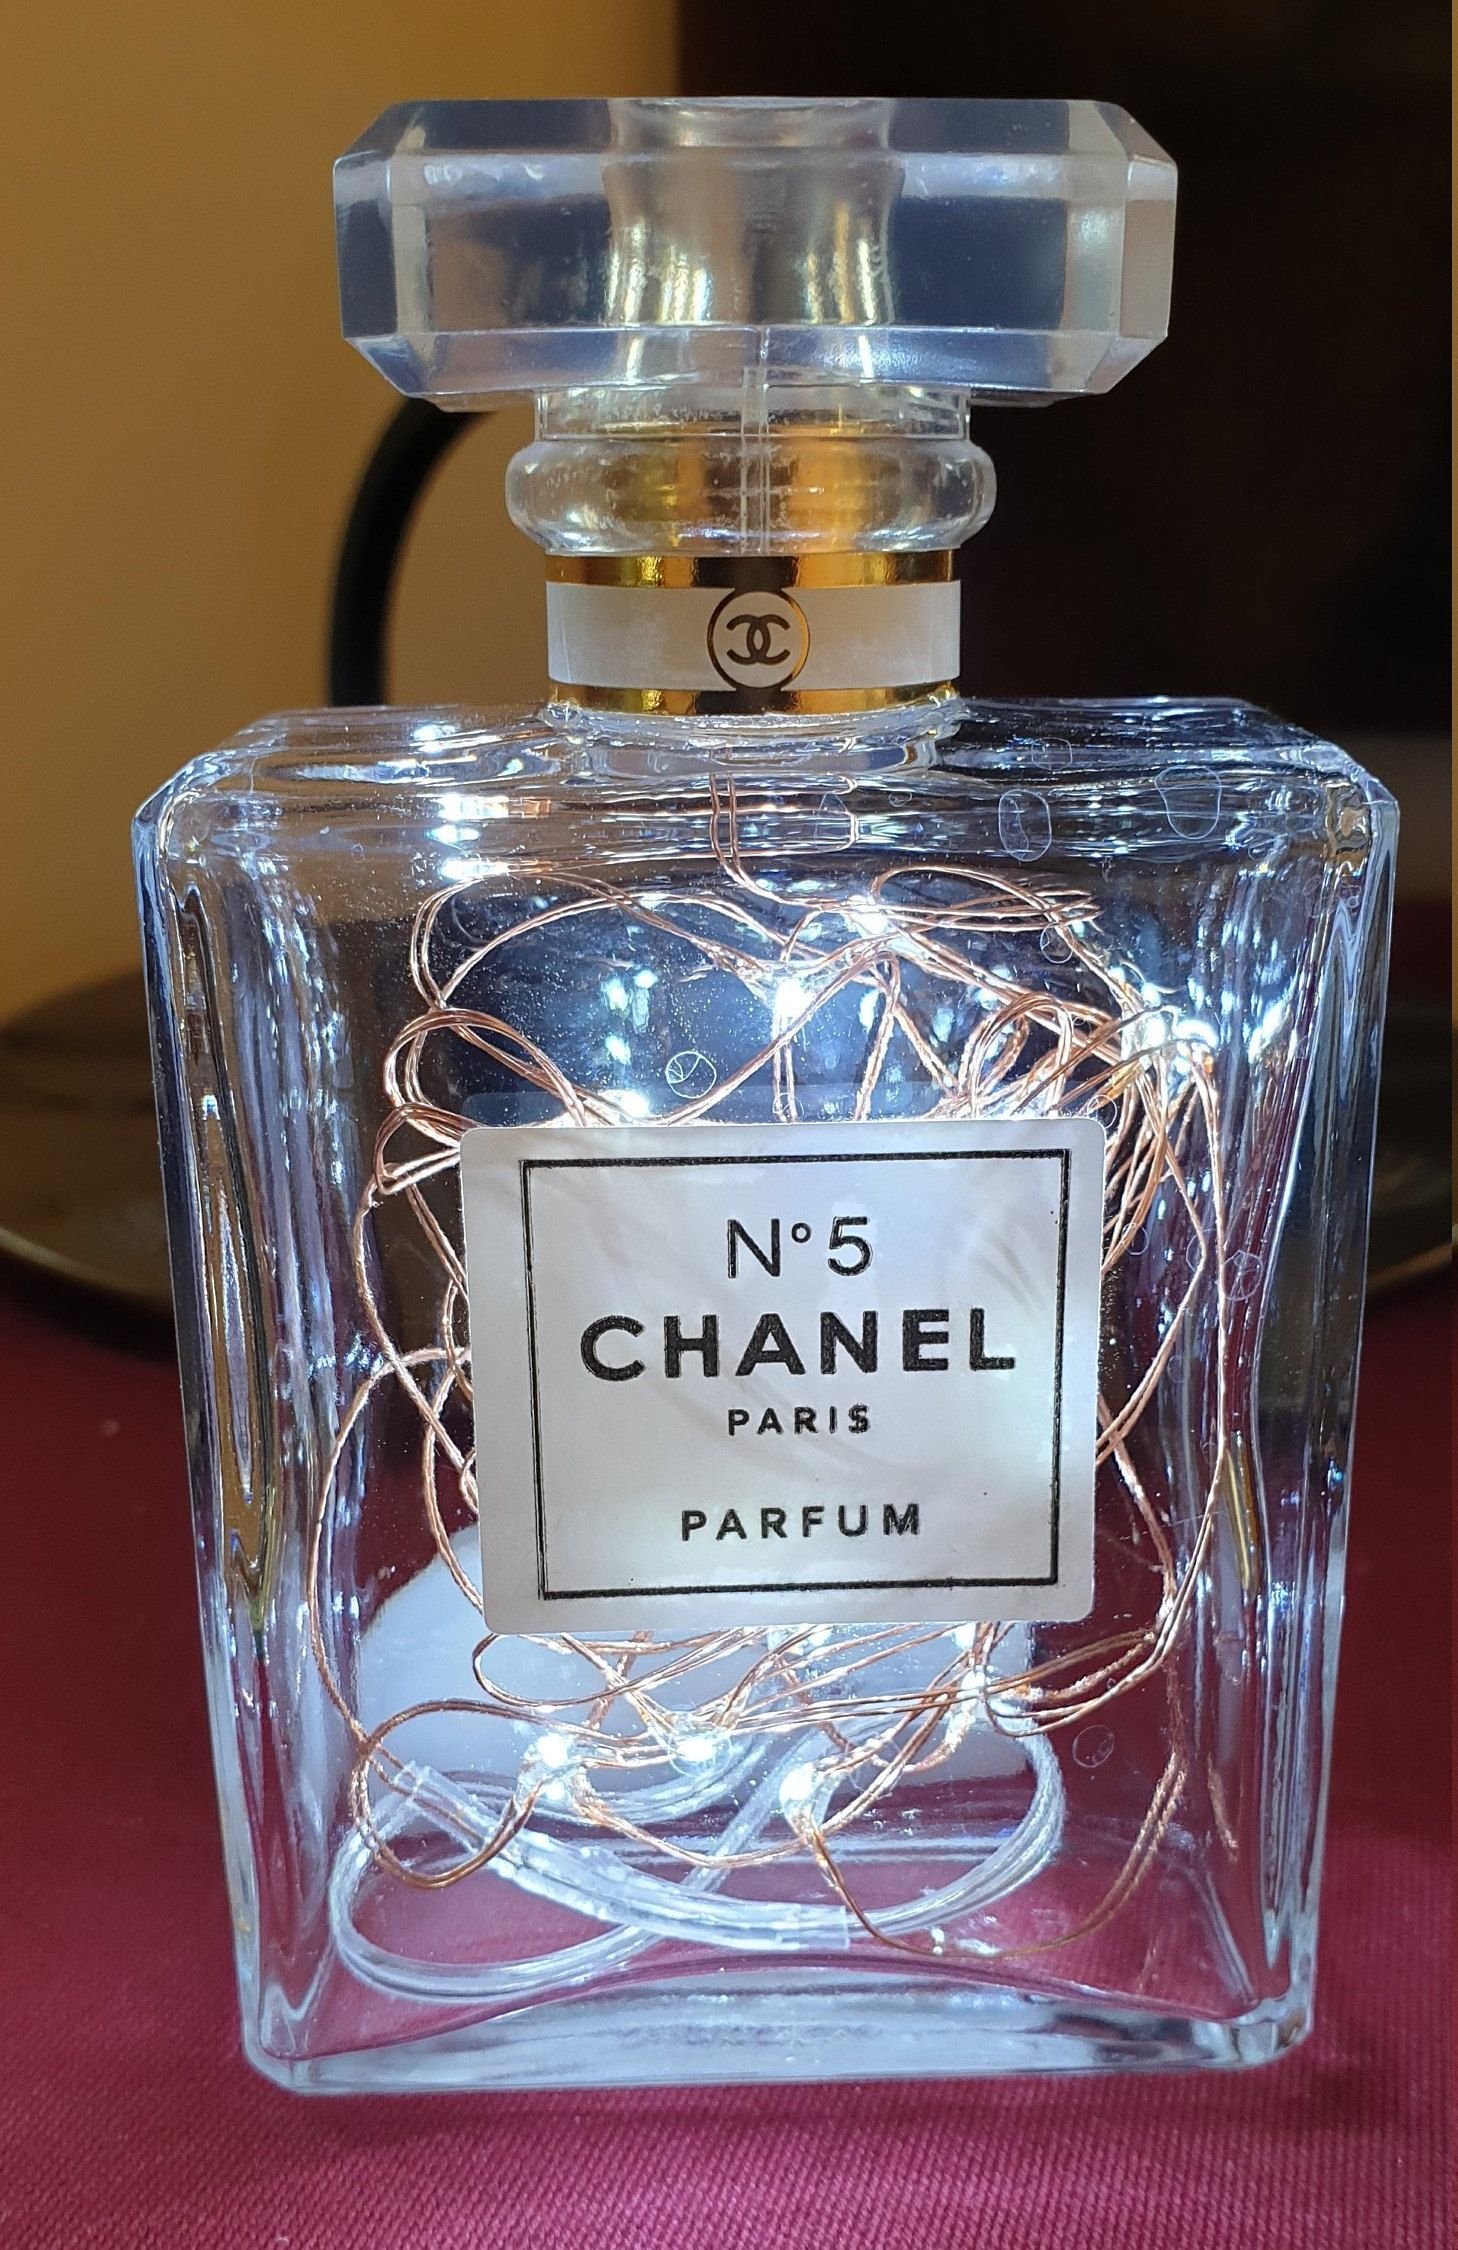 Original Chanel No5 Bottle LED Lamp (With images) Chanel